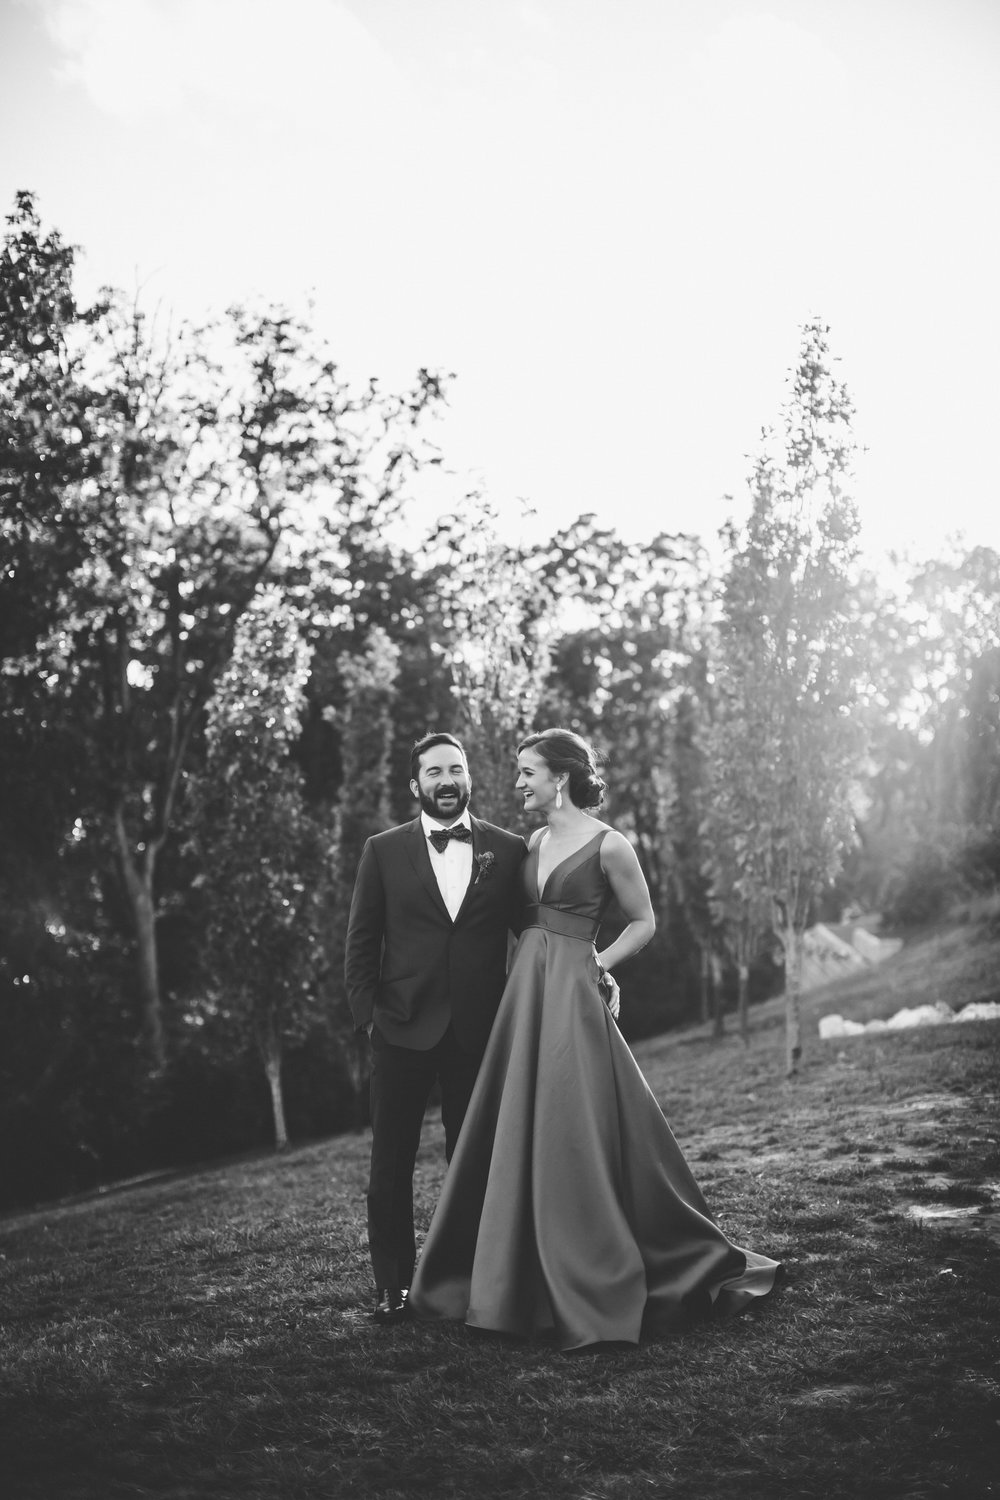 green wedding dress, seattle wedding photographer